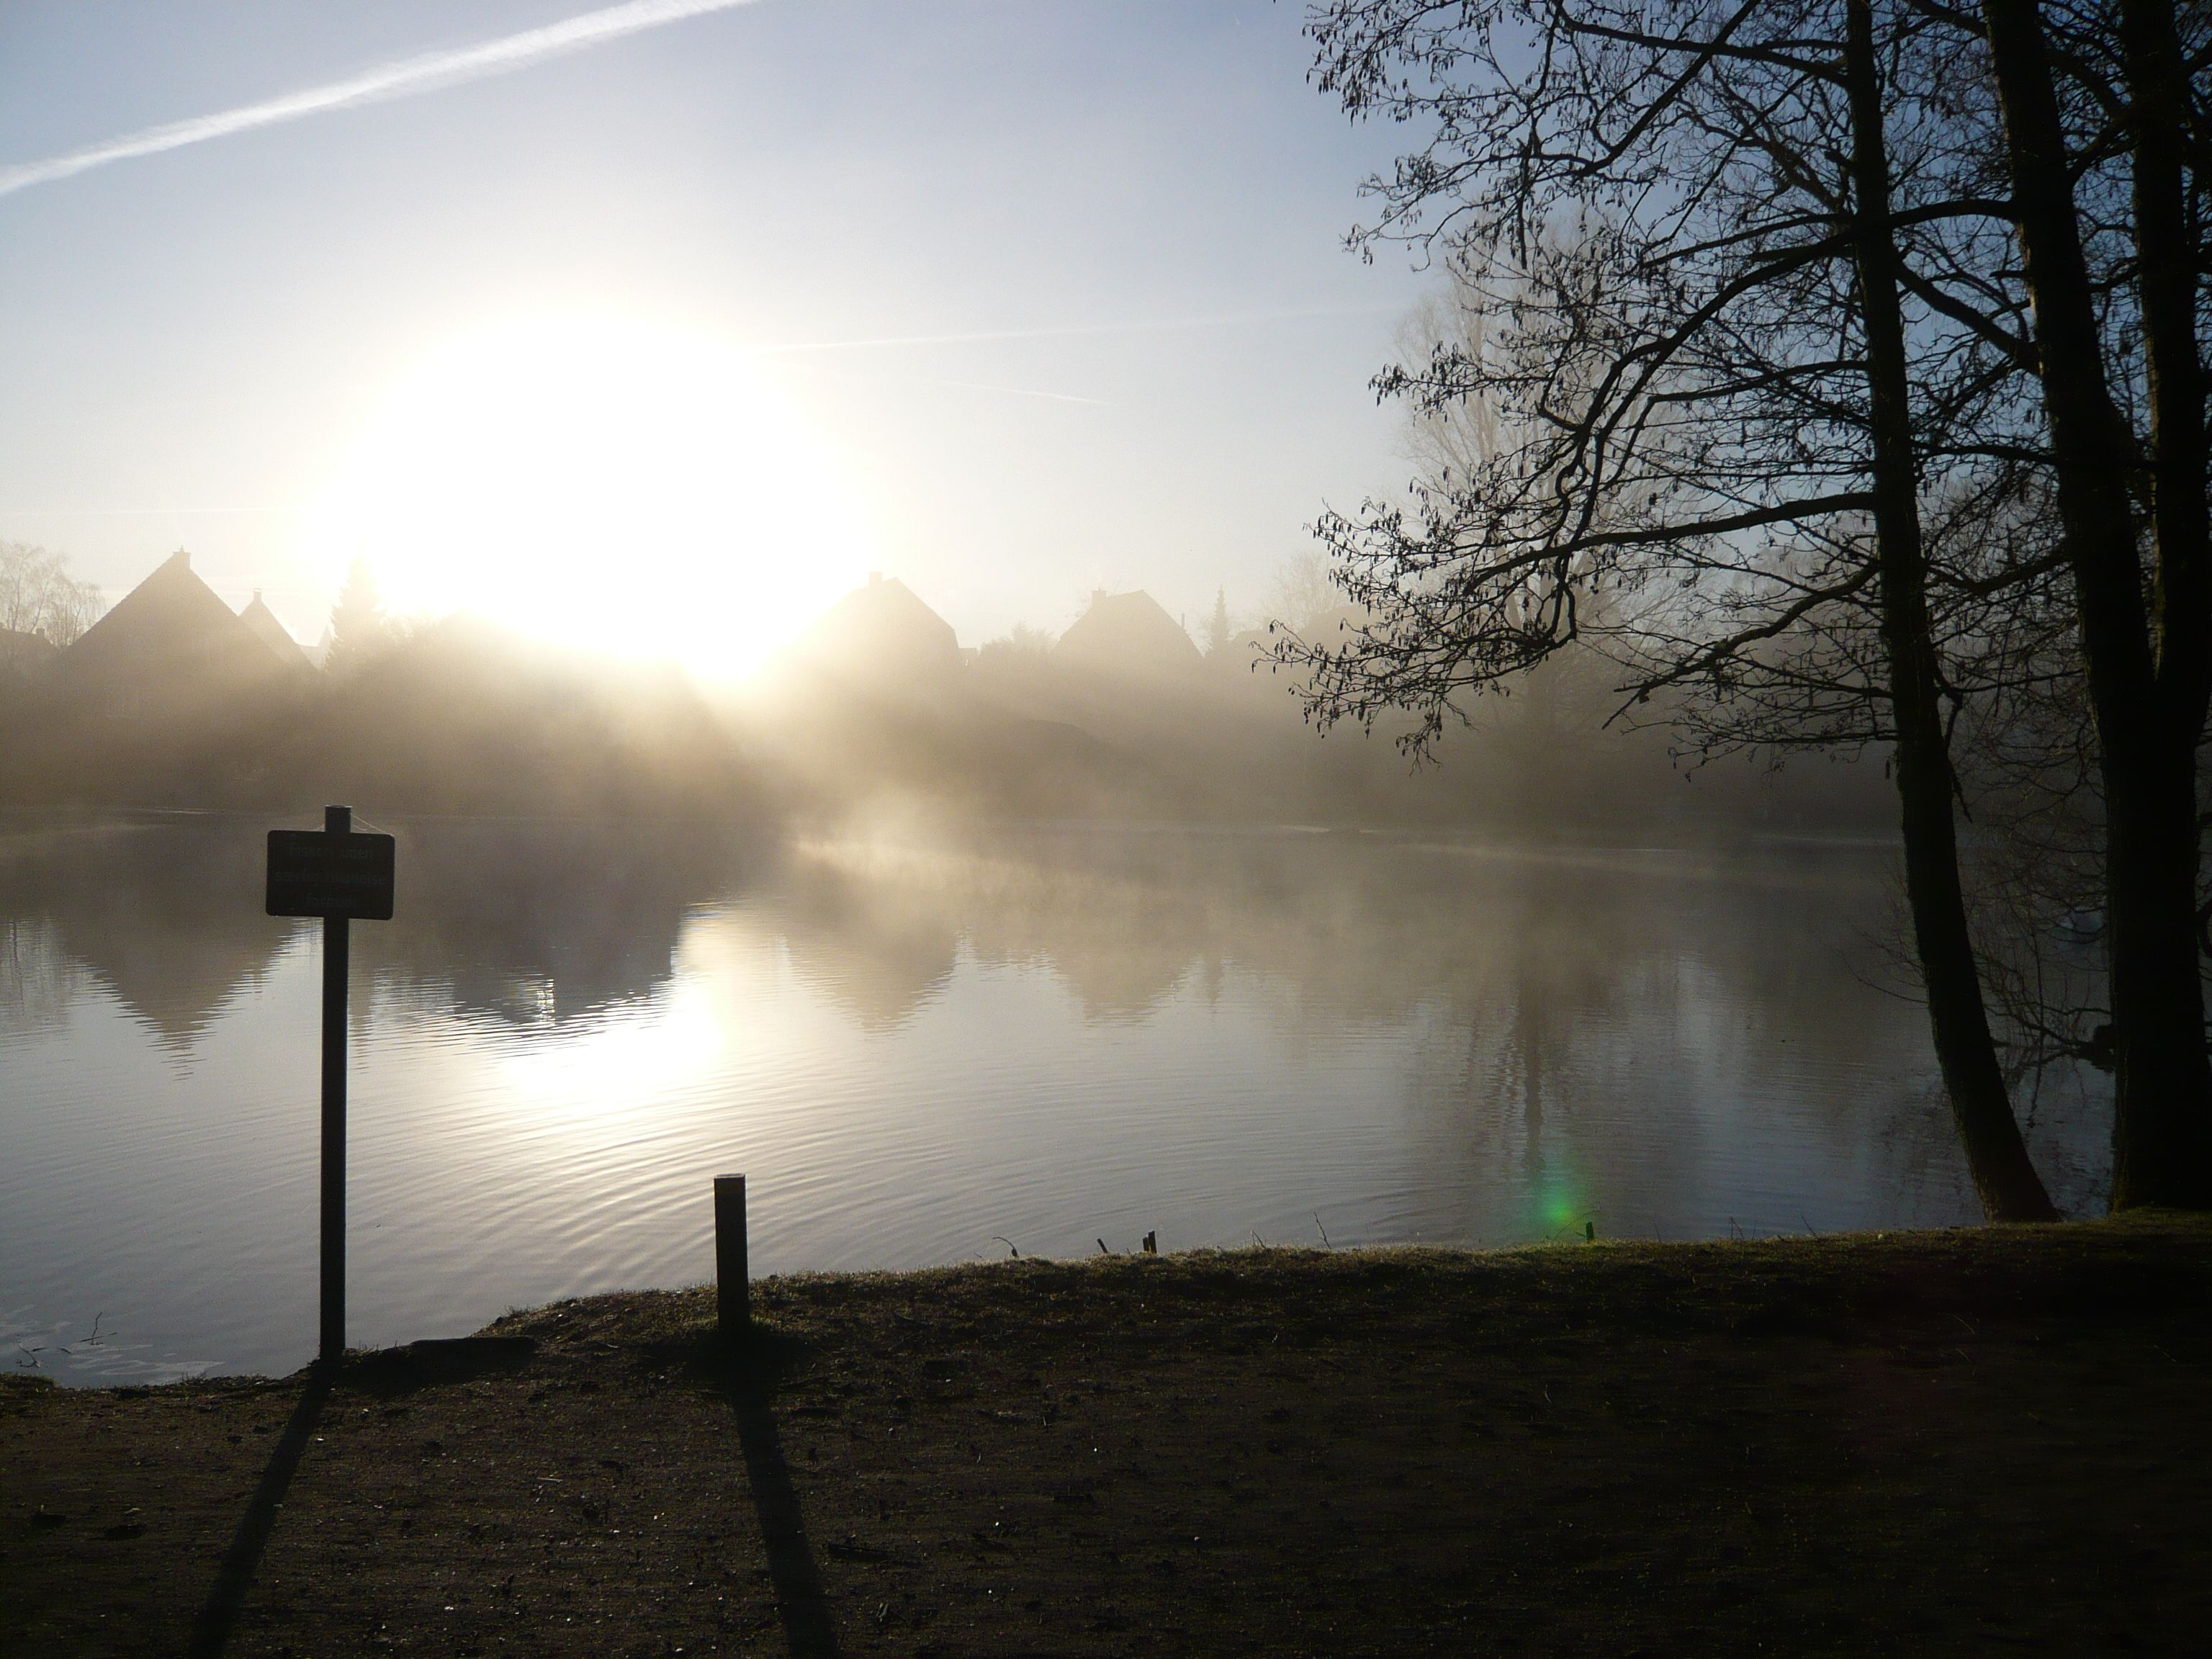 Misty Morning at Gentofte Lake. It took me a very long time getting to work this day, because I had my new pocket Leica camera with me :-)